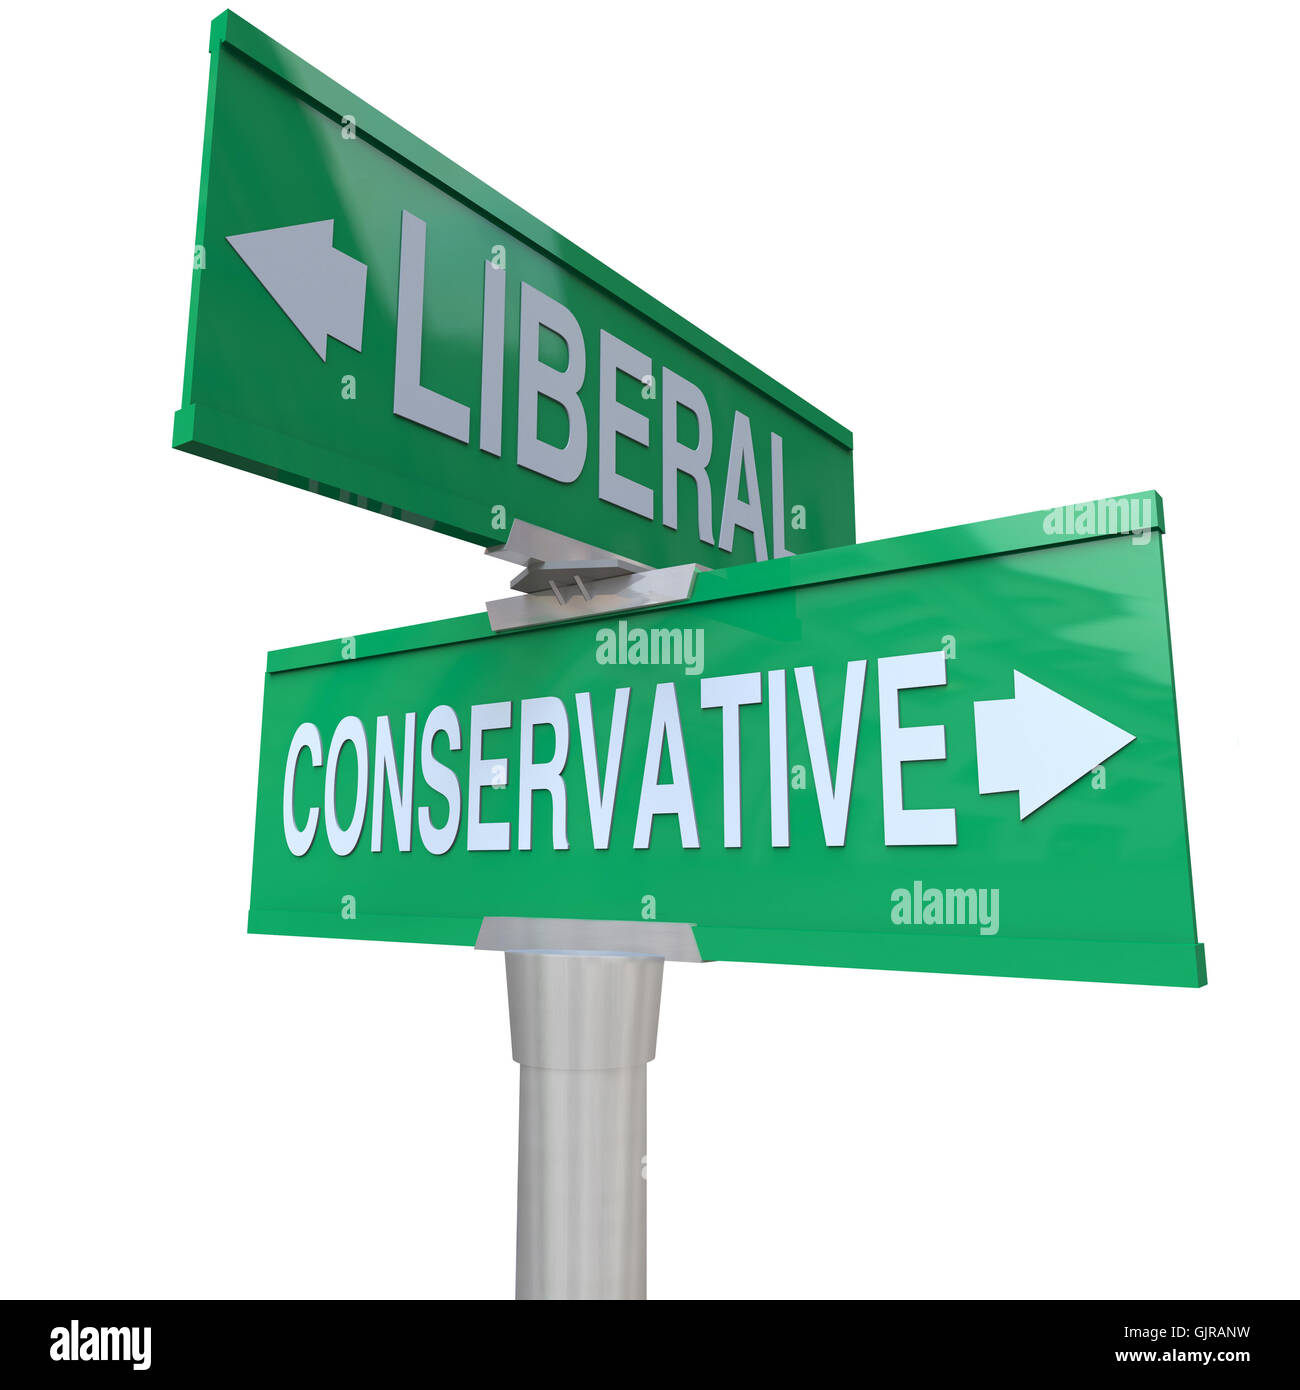 Liberal Versus Conservative Two Way Signs 2 Party System - Stock Image